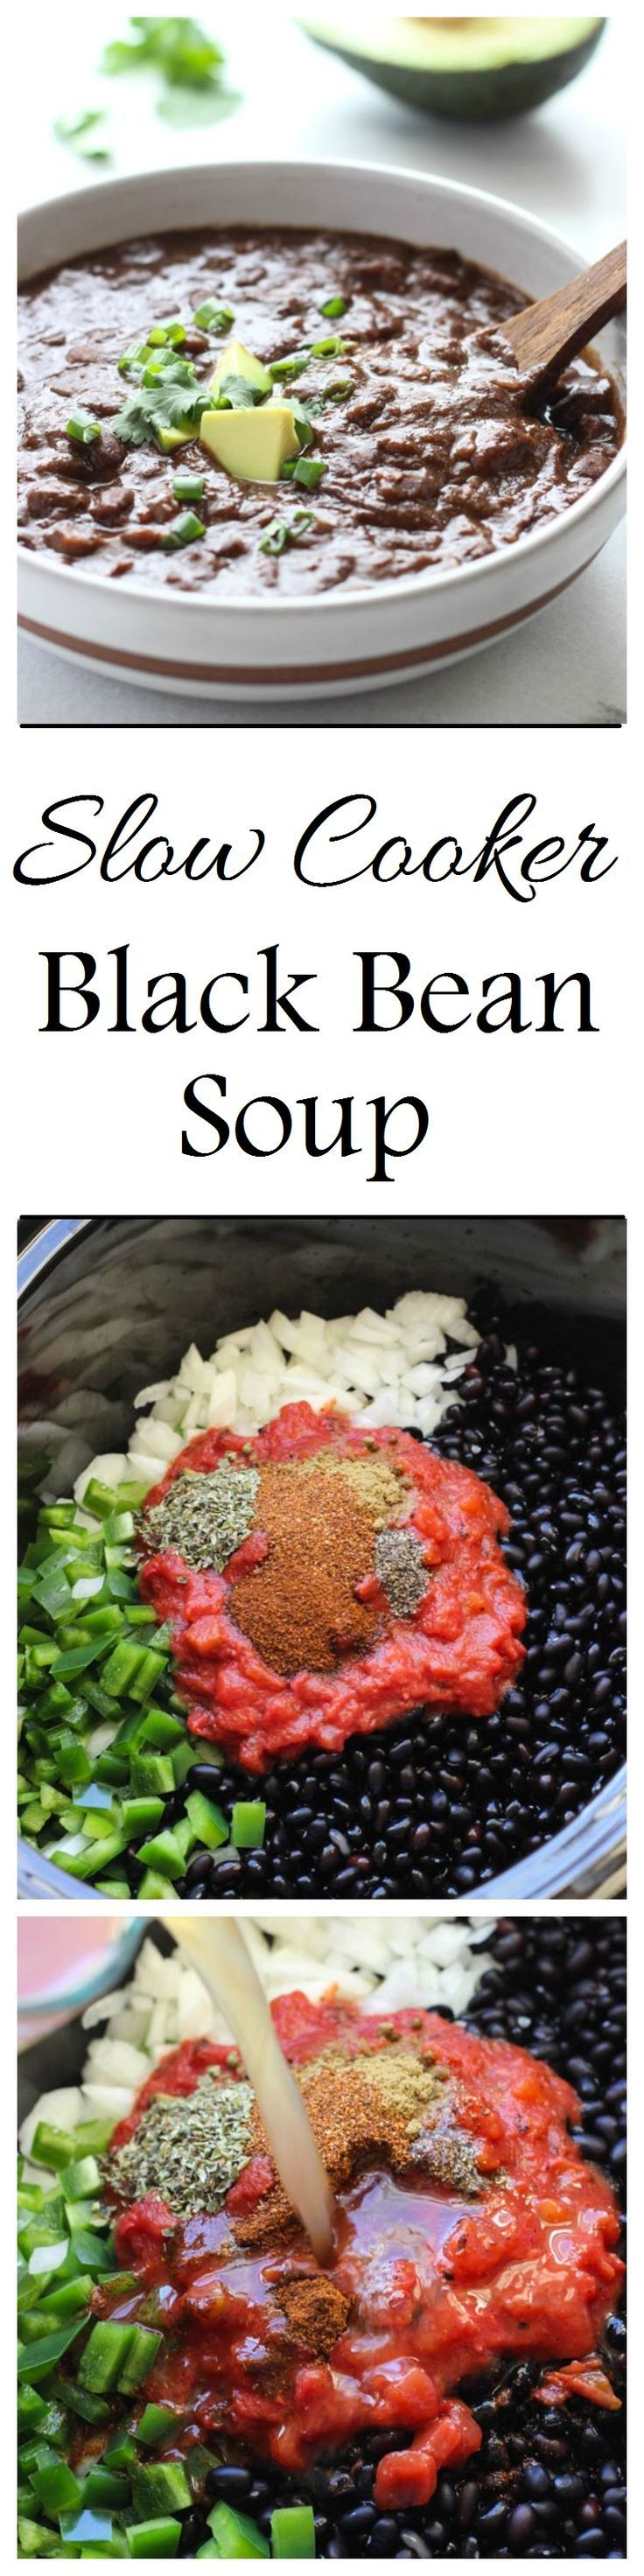 Easy Slow Cooker Black Bean Soup- throw everything in your slow cooker ...